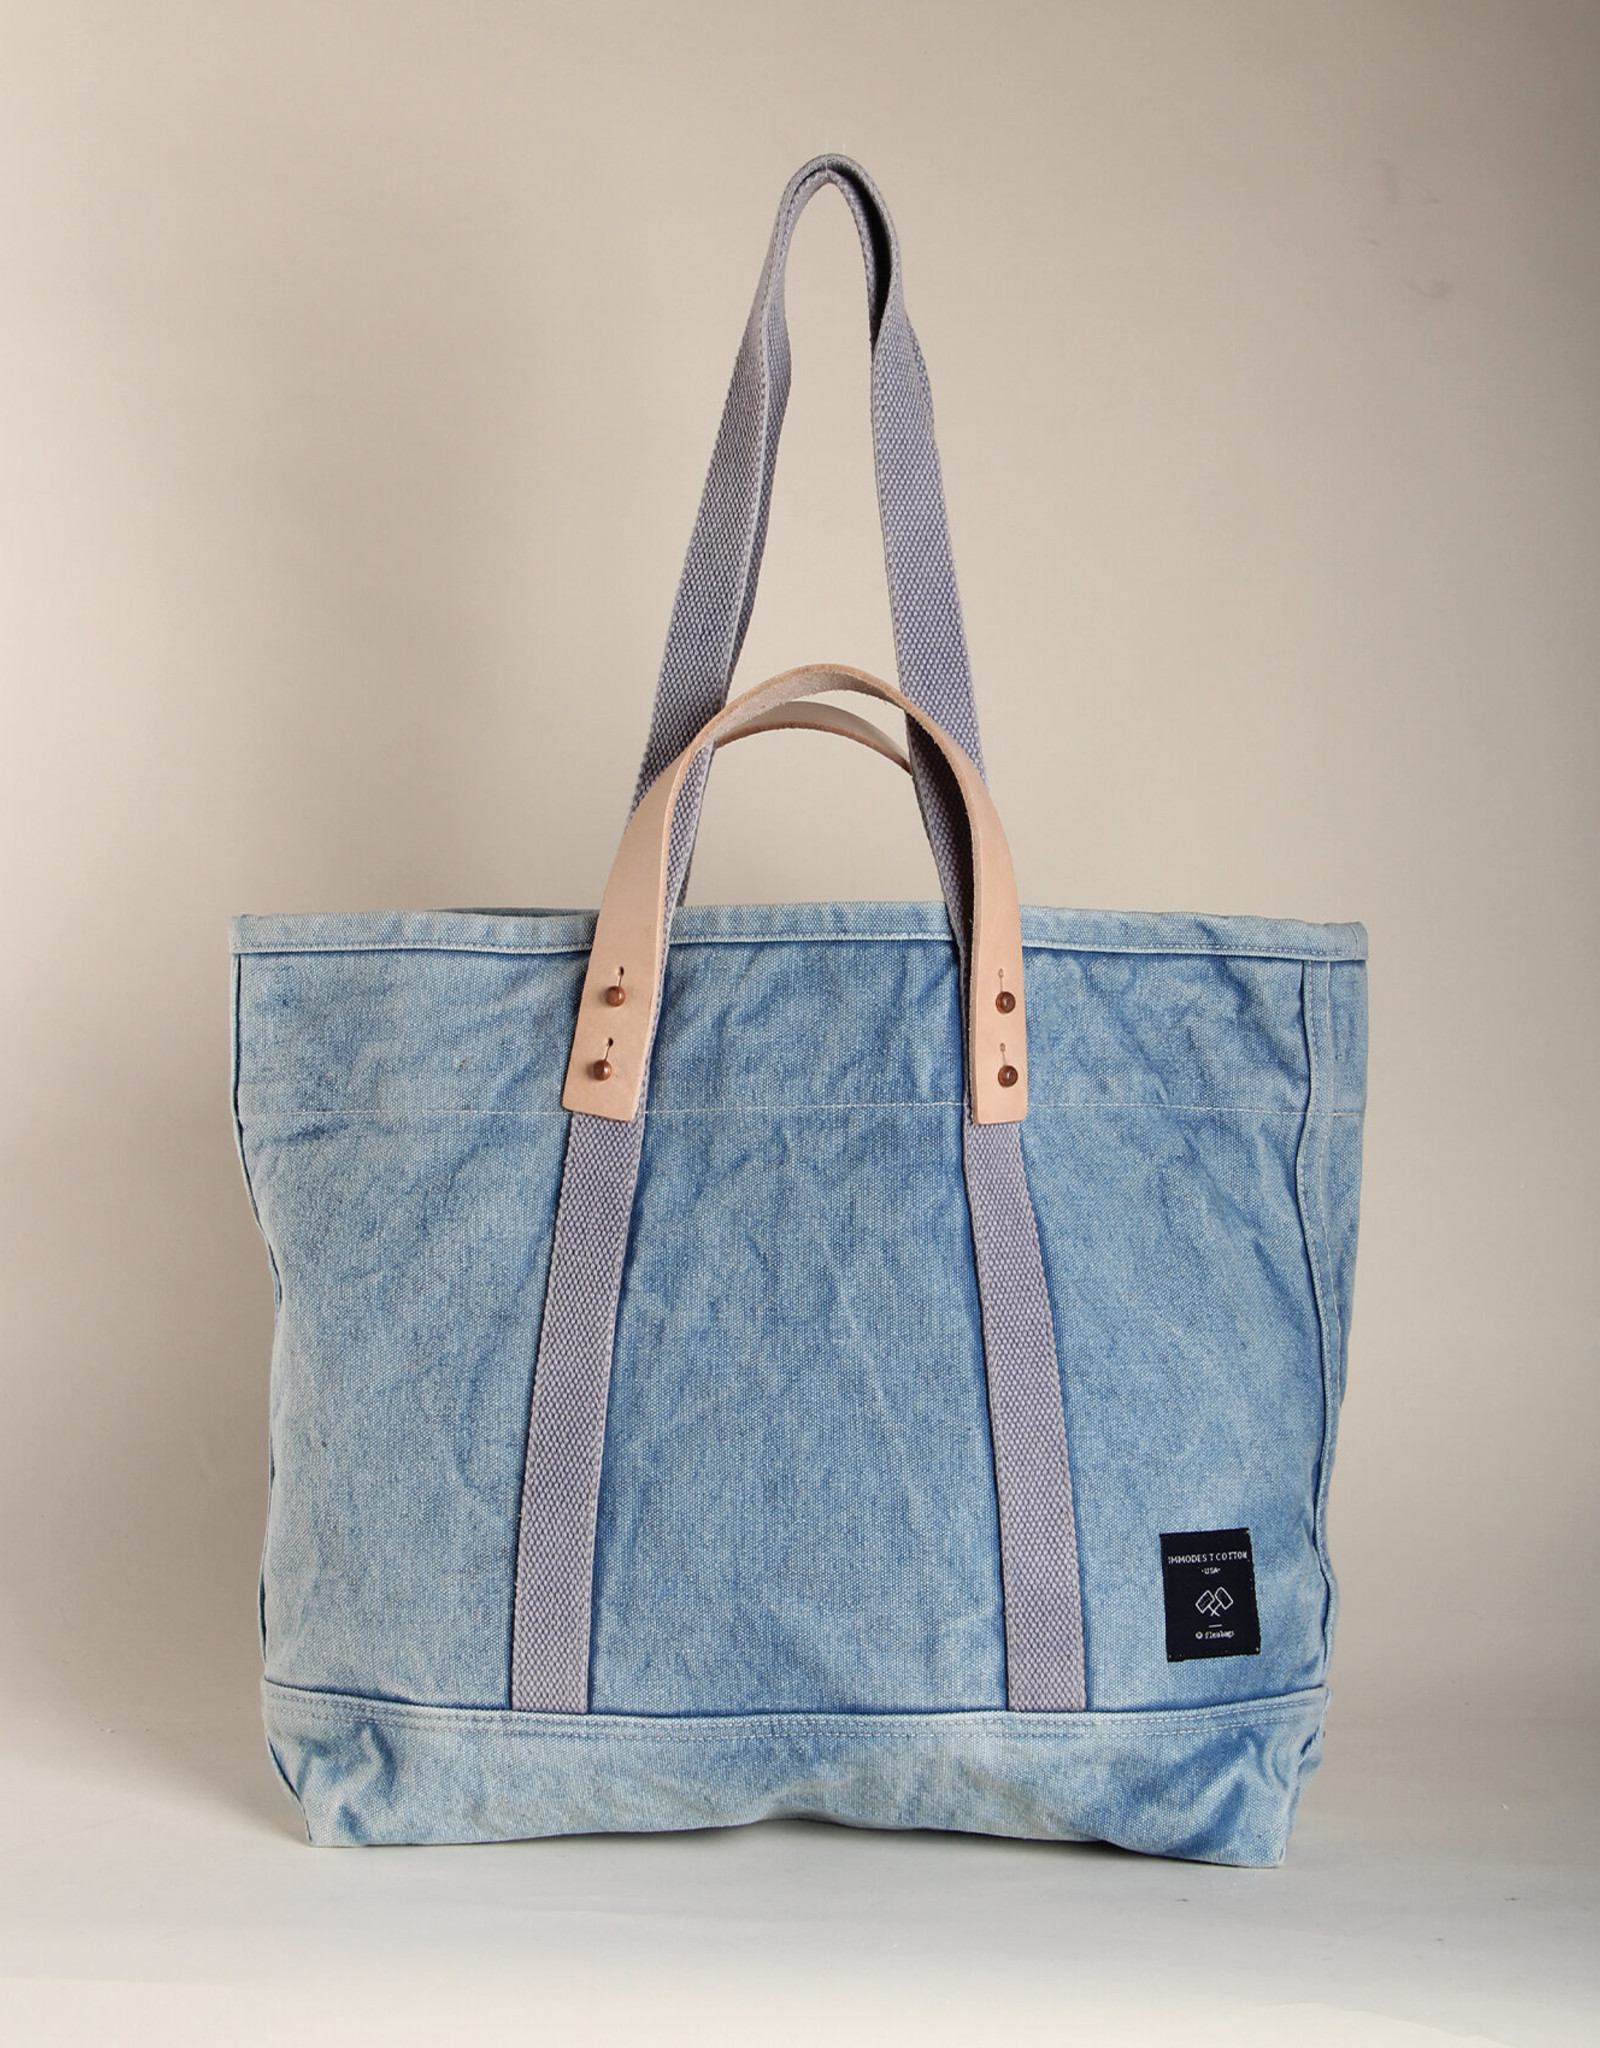 Immodest Cotton Acid Wash Tote - Large